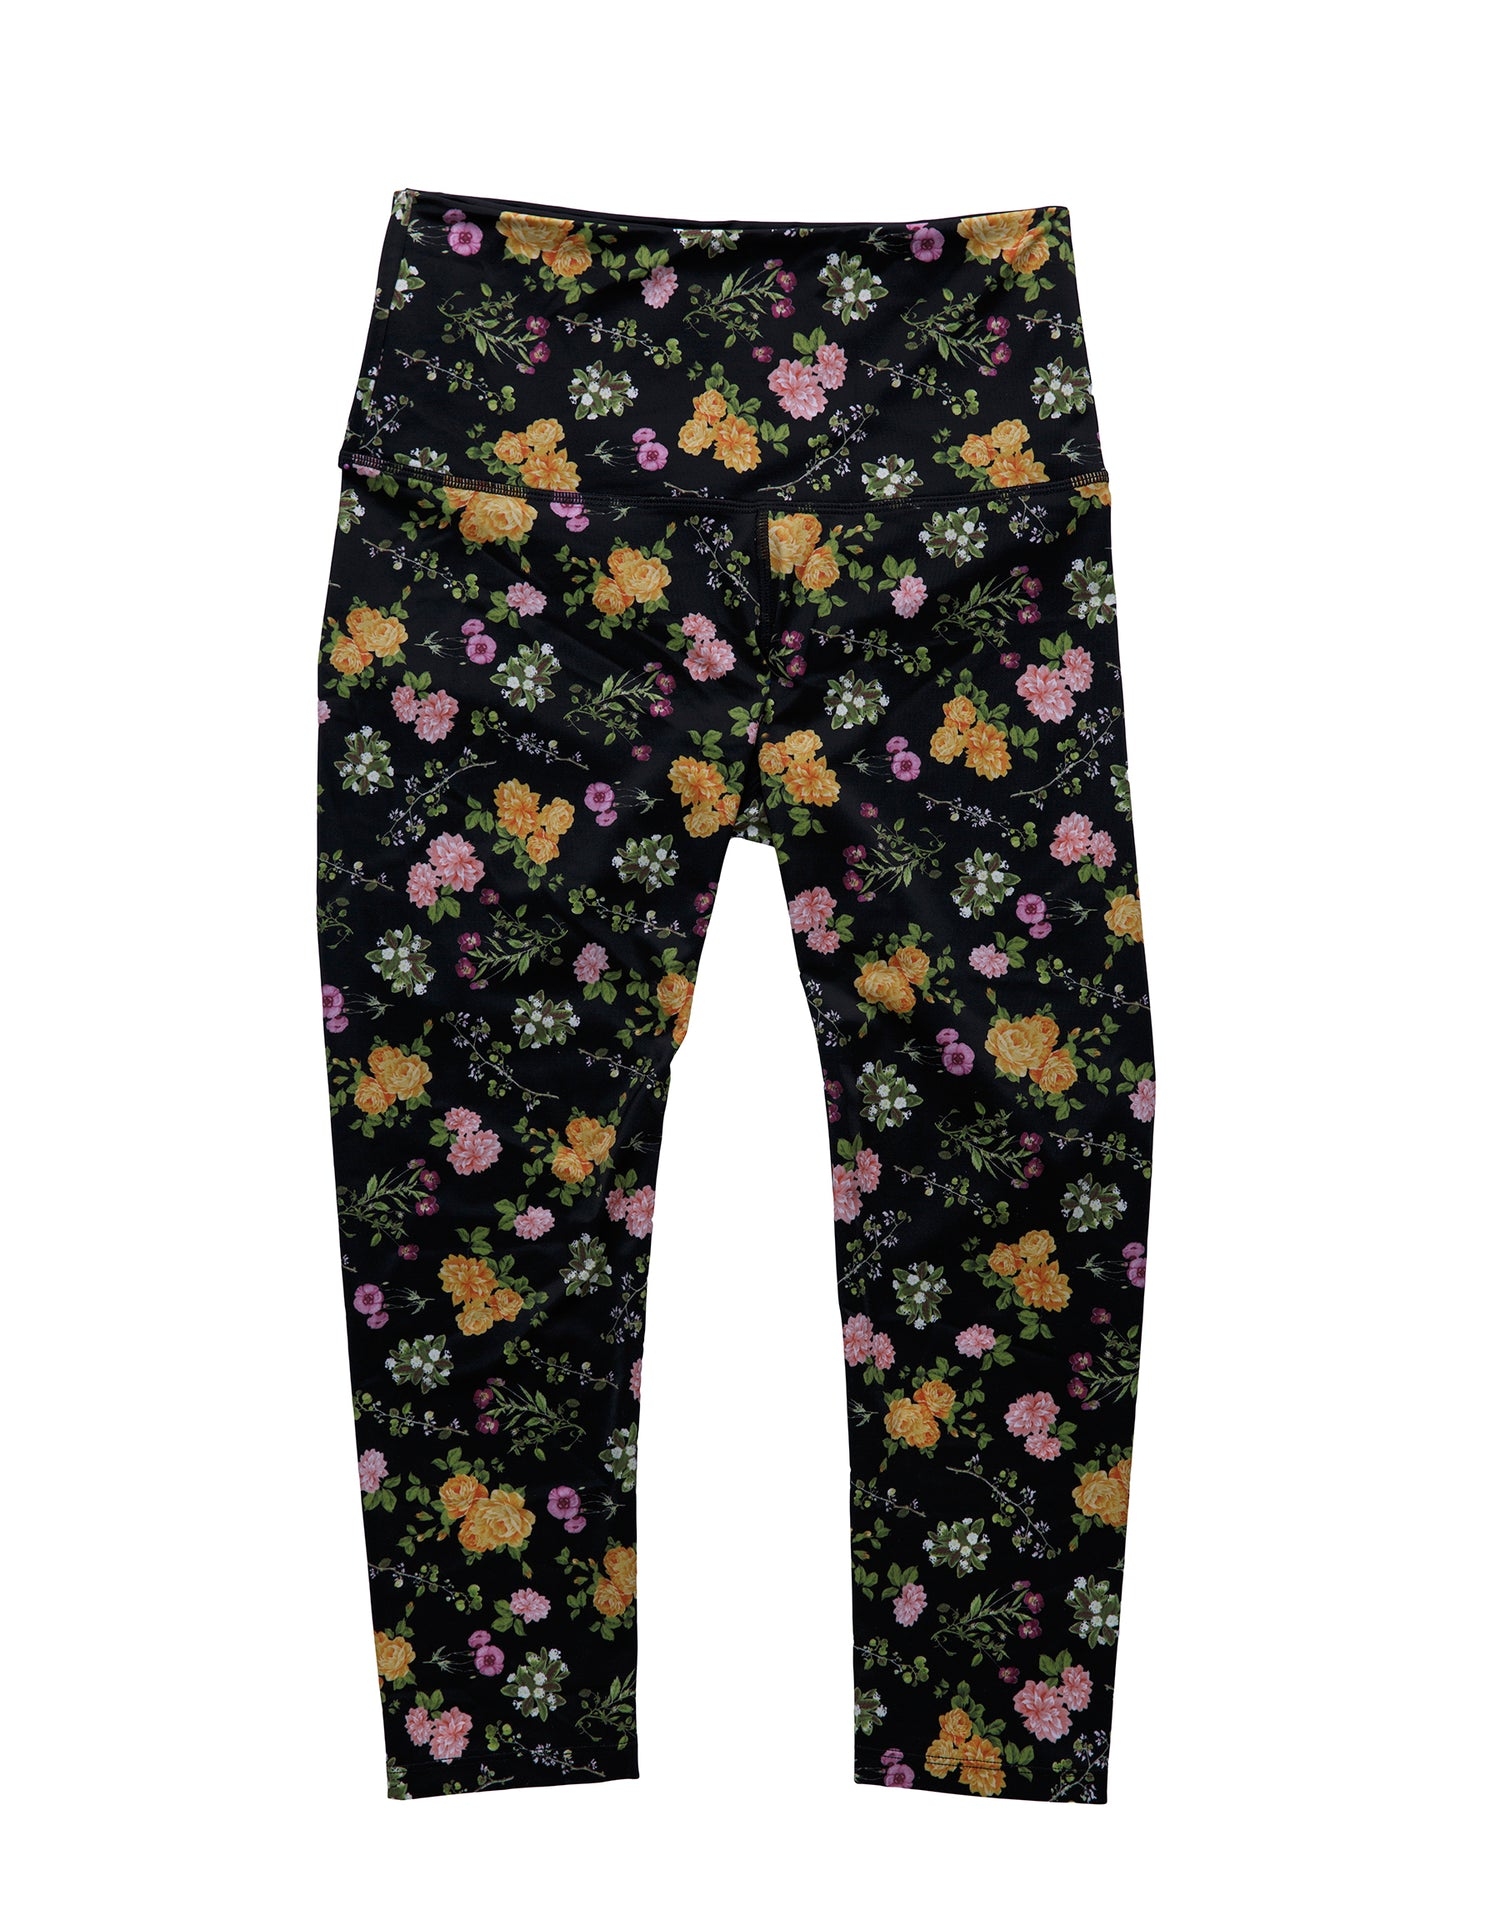 Sunny Legging in Black Floral - product view